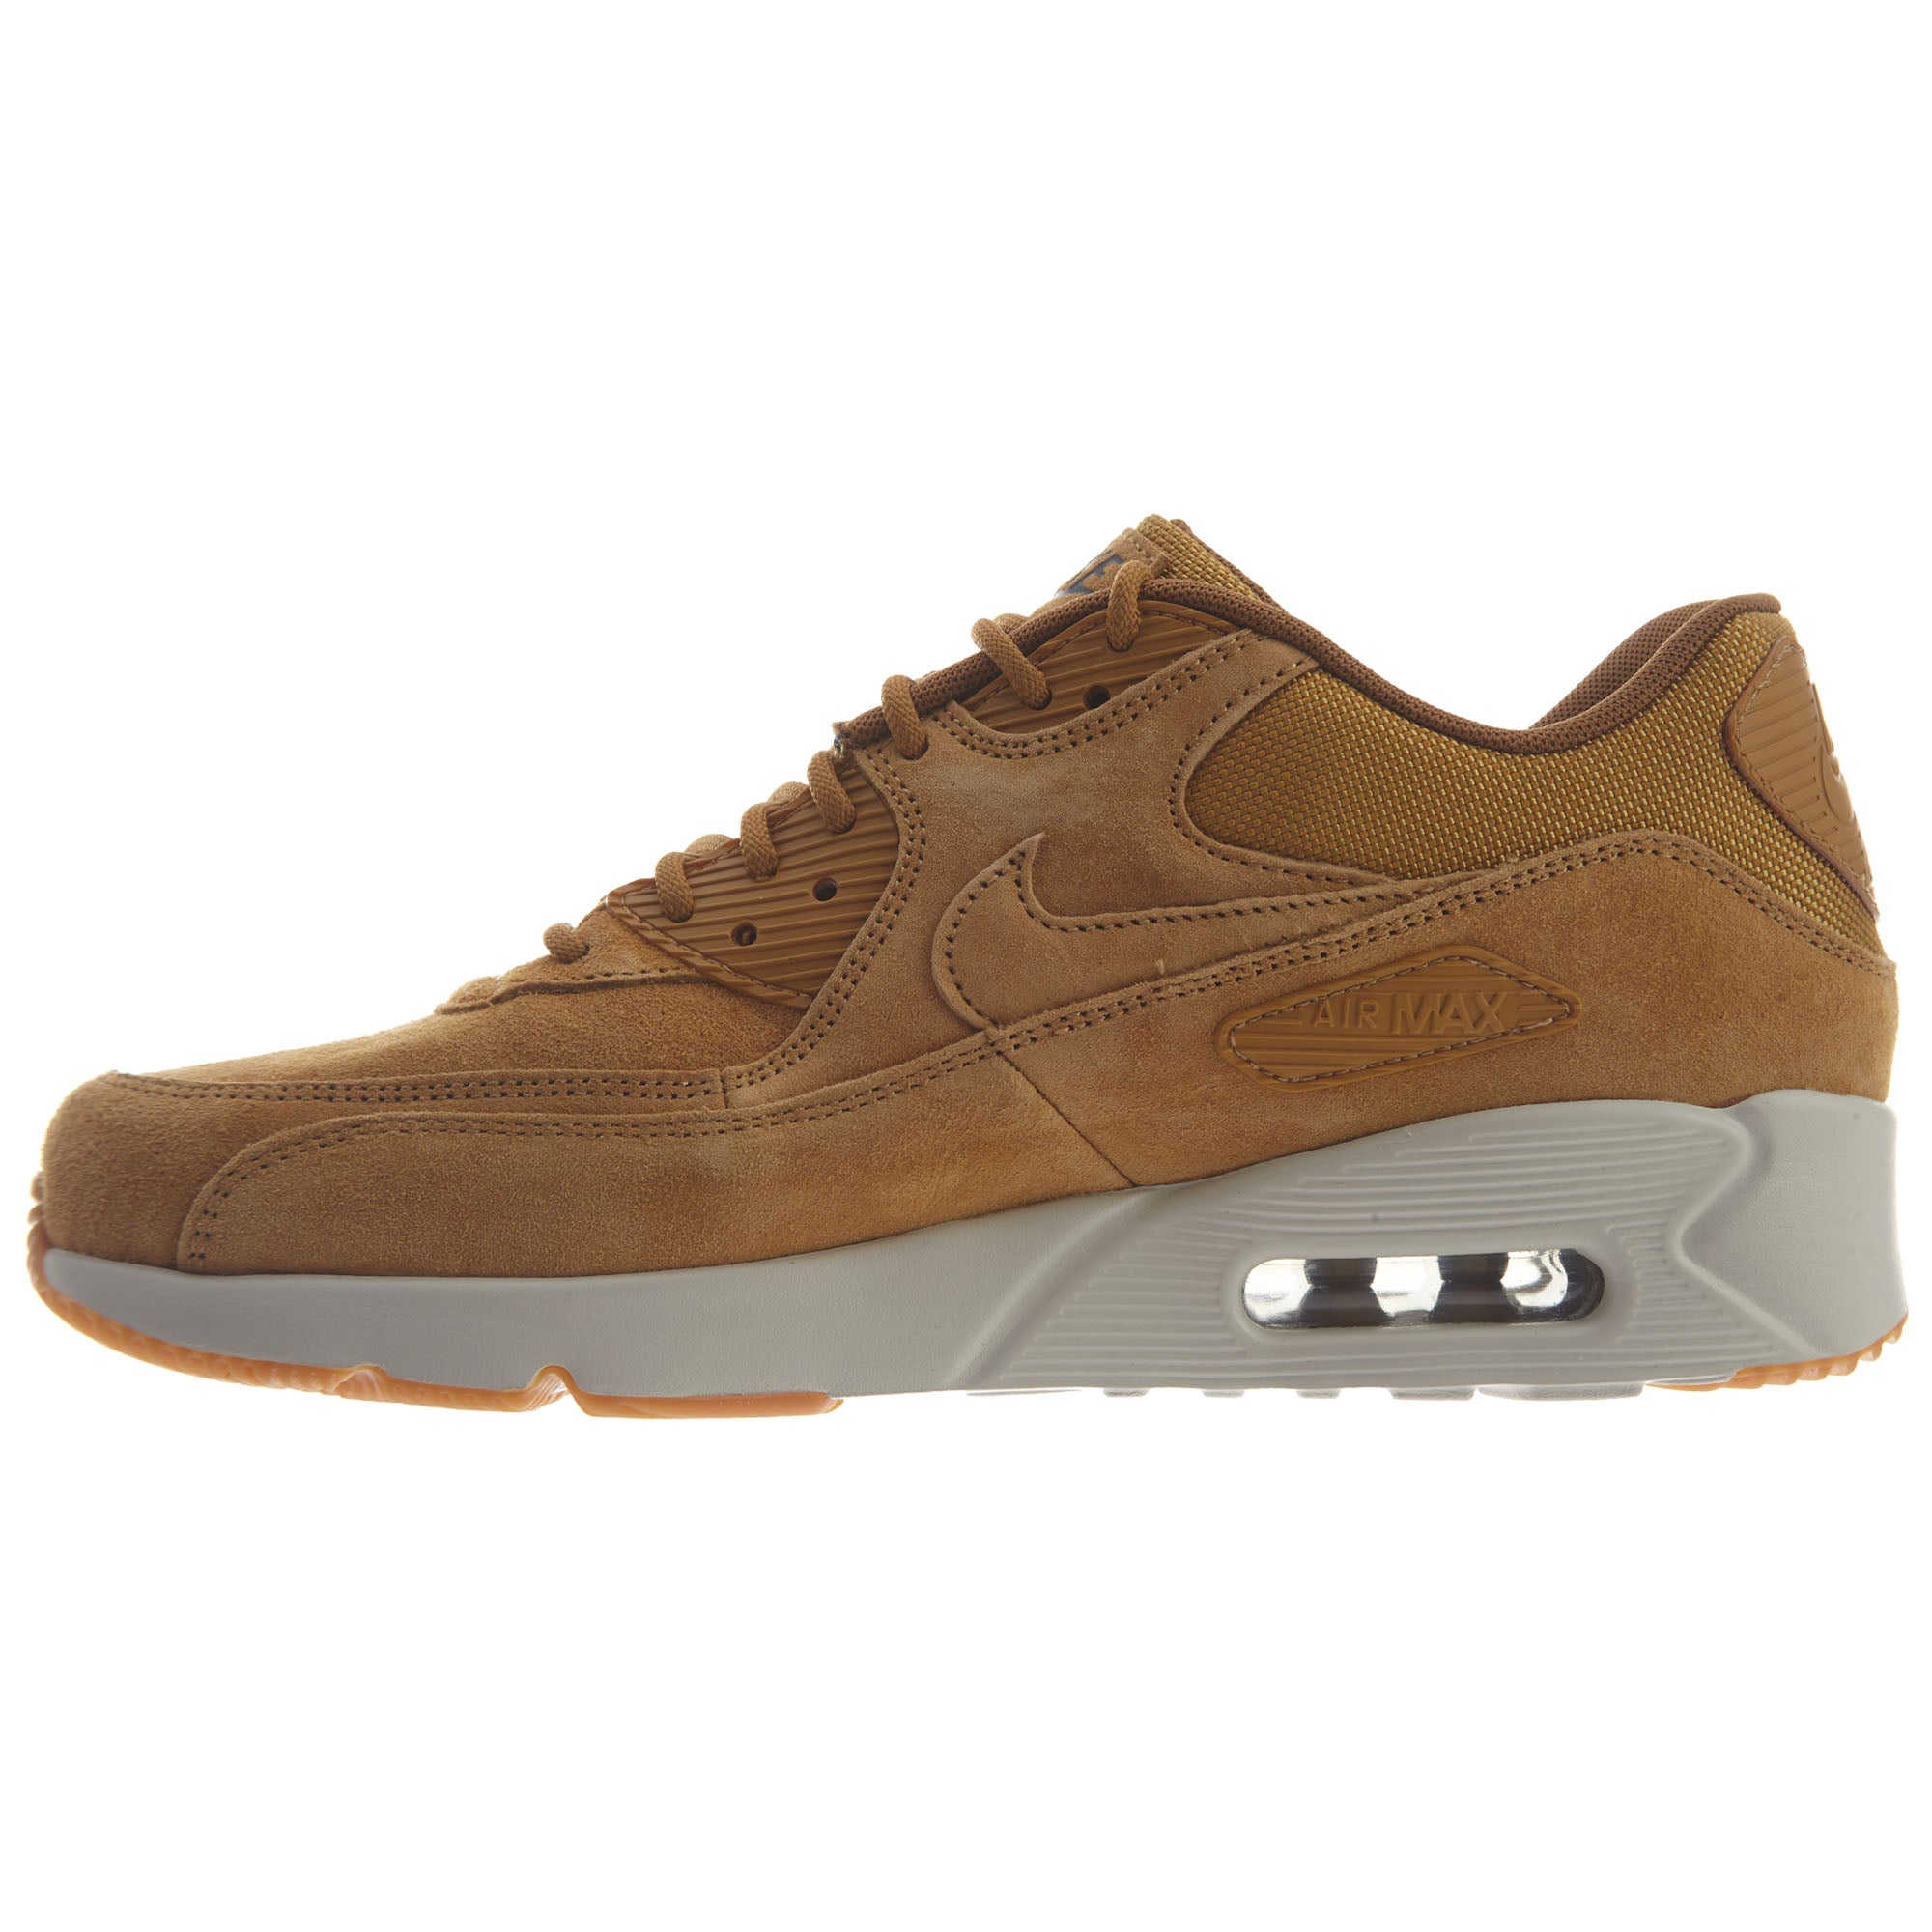 size 40 0018b 773ef Nike Air Max 90 Ultra 2.0 Ltr Mens Style   924447-700